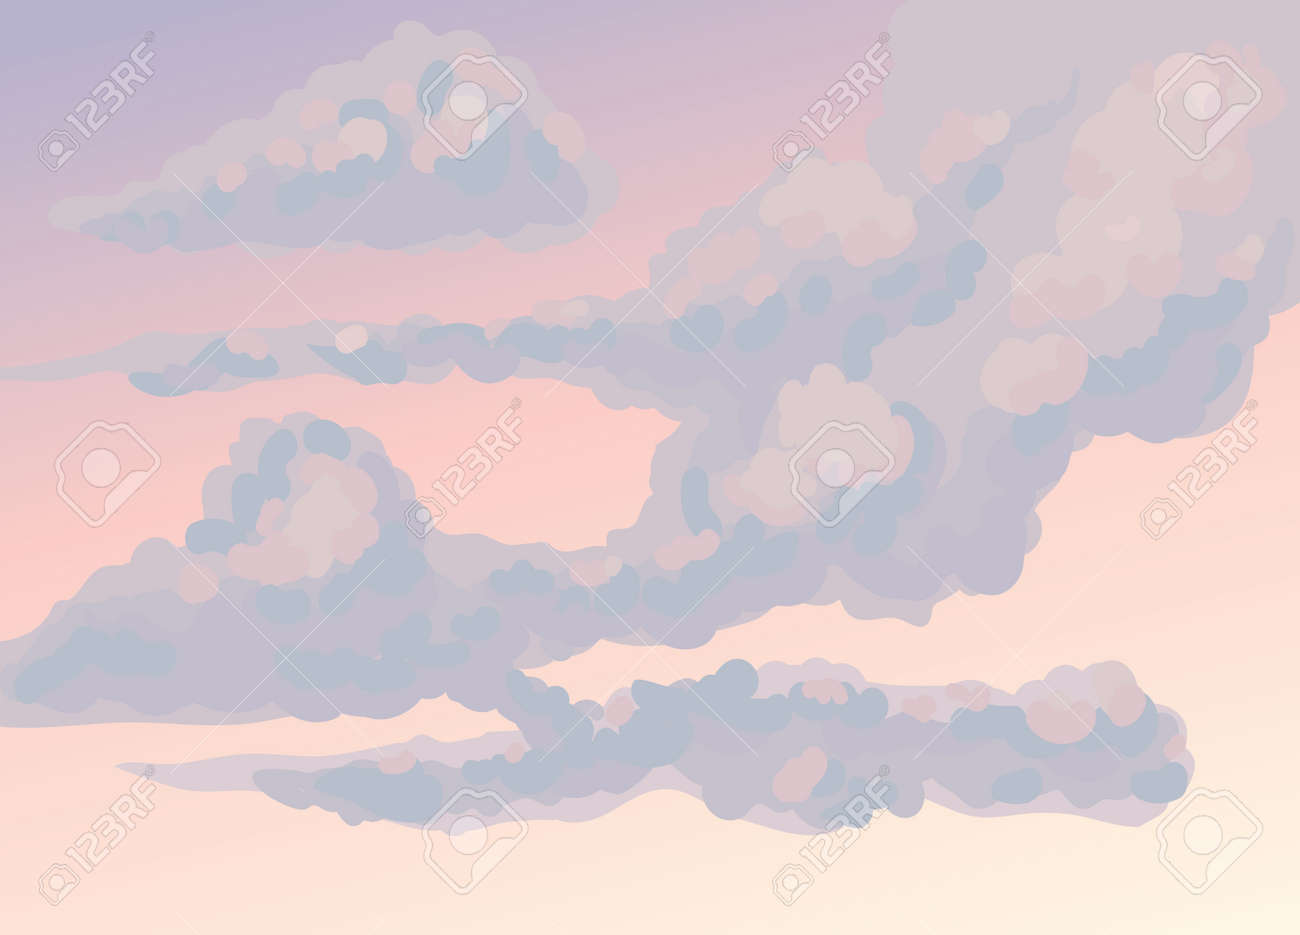 Autumn violet frown nebulous scenery isolated on red twilight heaven backdrop. Bright gloomy purple color hand drawn somber gale skyscape sketch. - 156597148